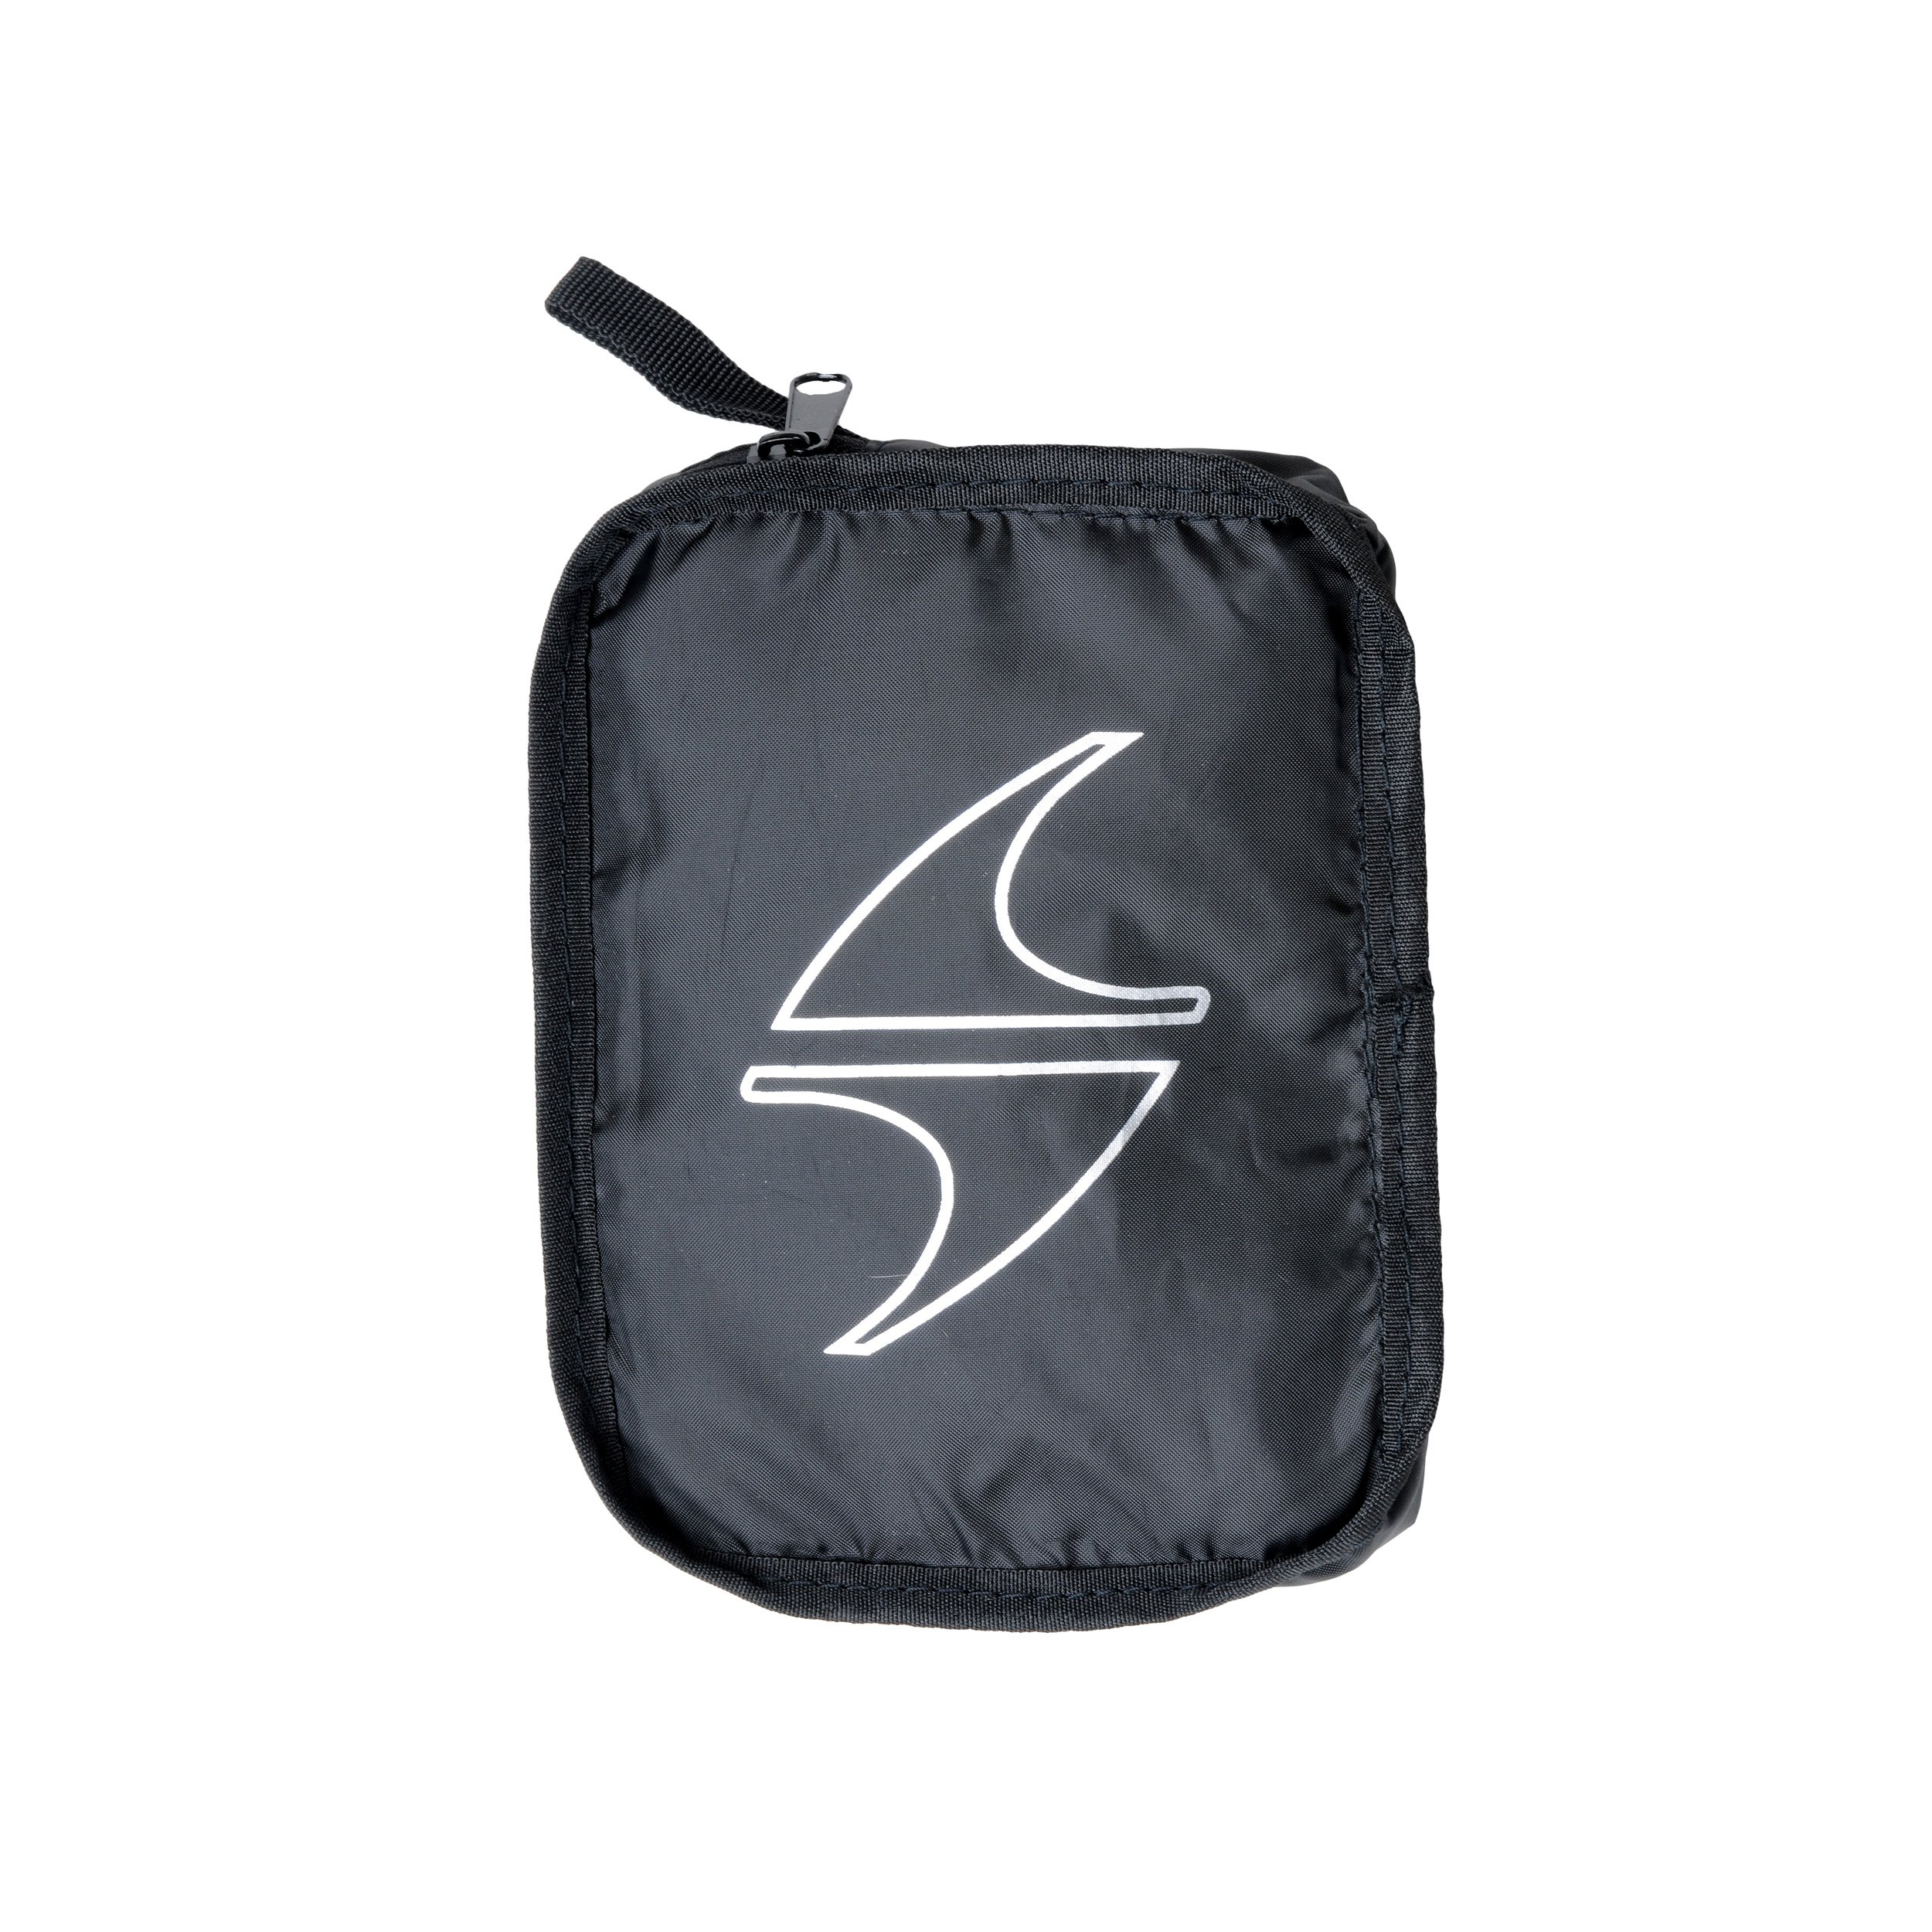 Blizzard ski bag for cross country 210 cm